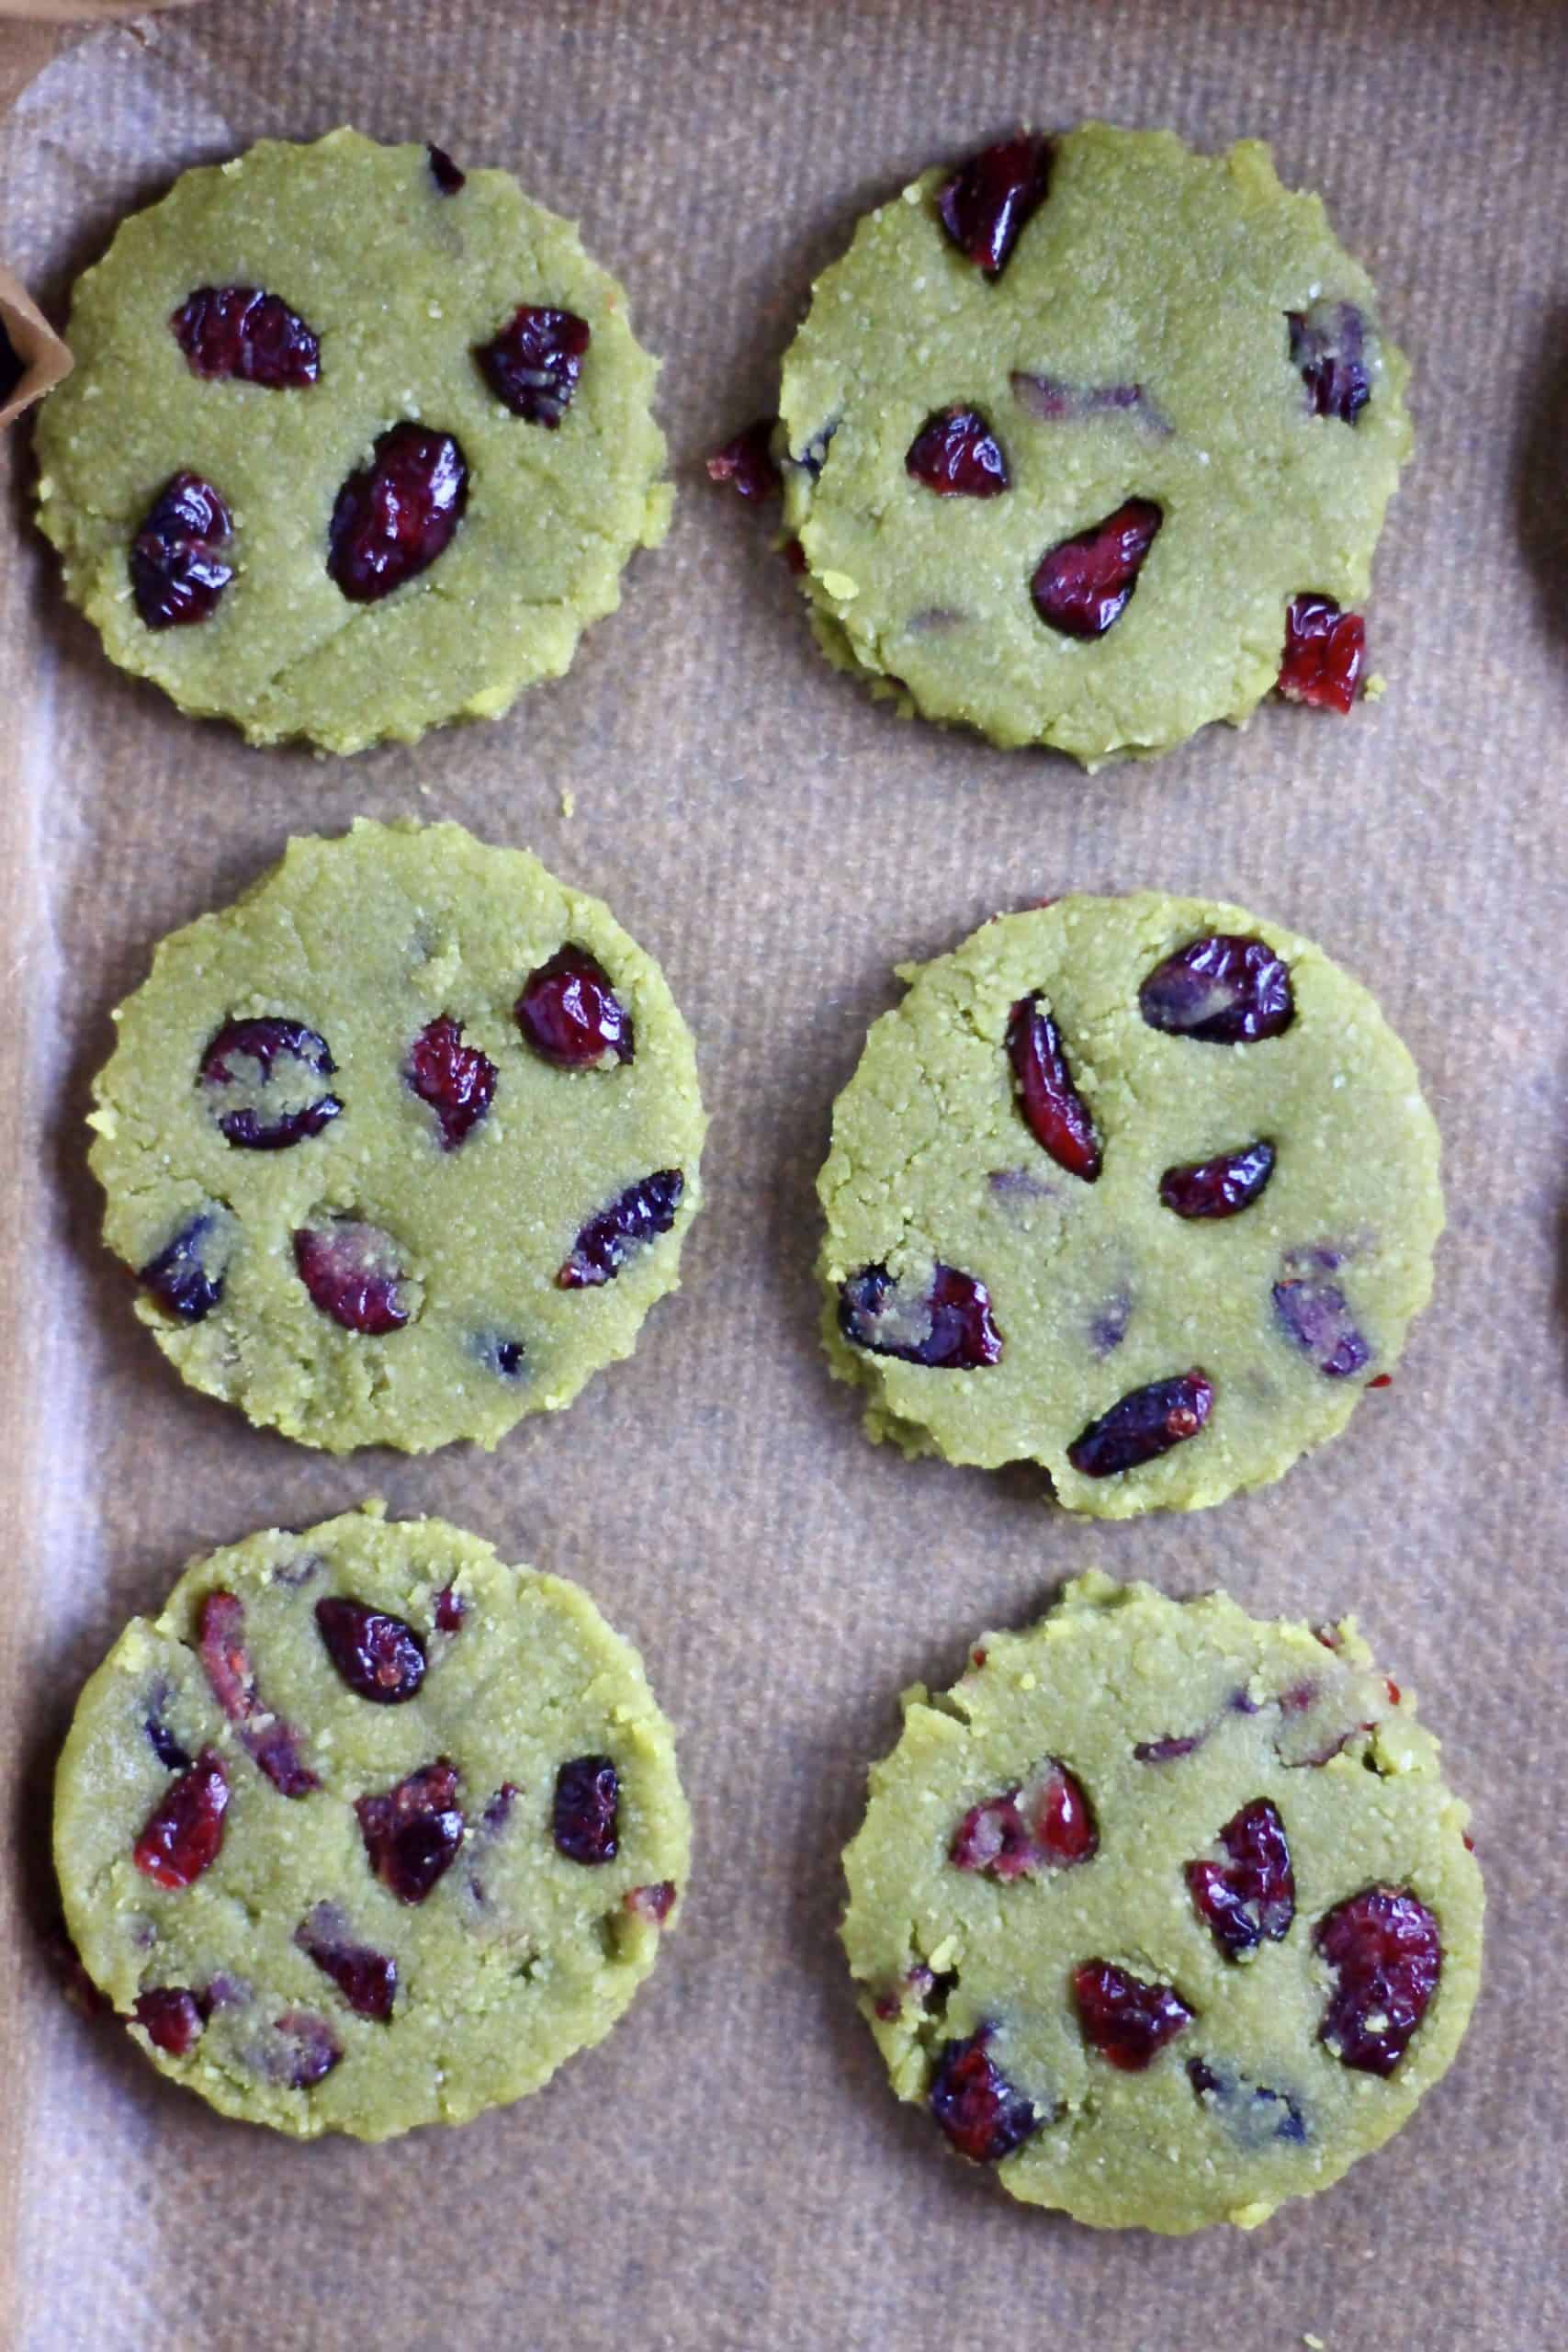 Six raw vegan matcha shortbread cookies with dried cranberries on a baking tray lined with baking paper